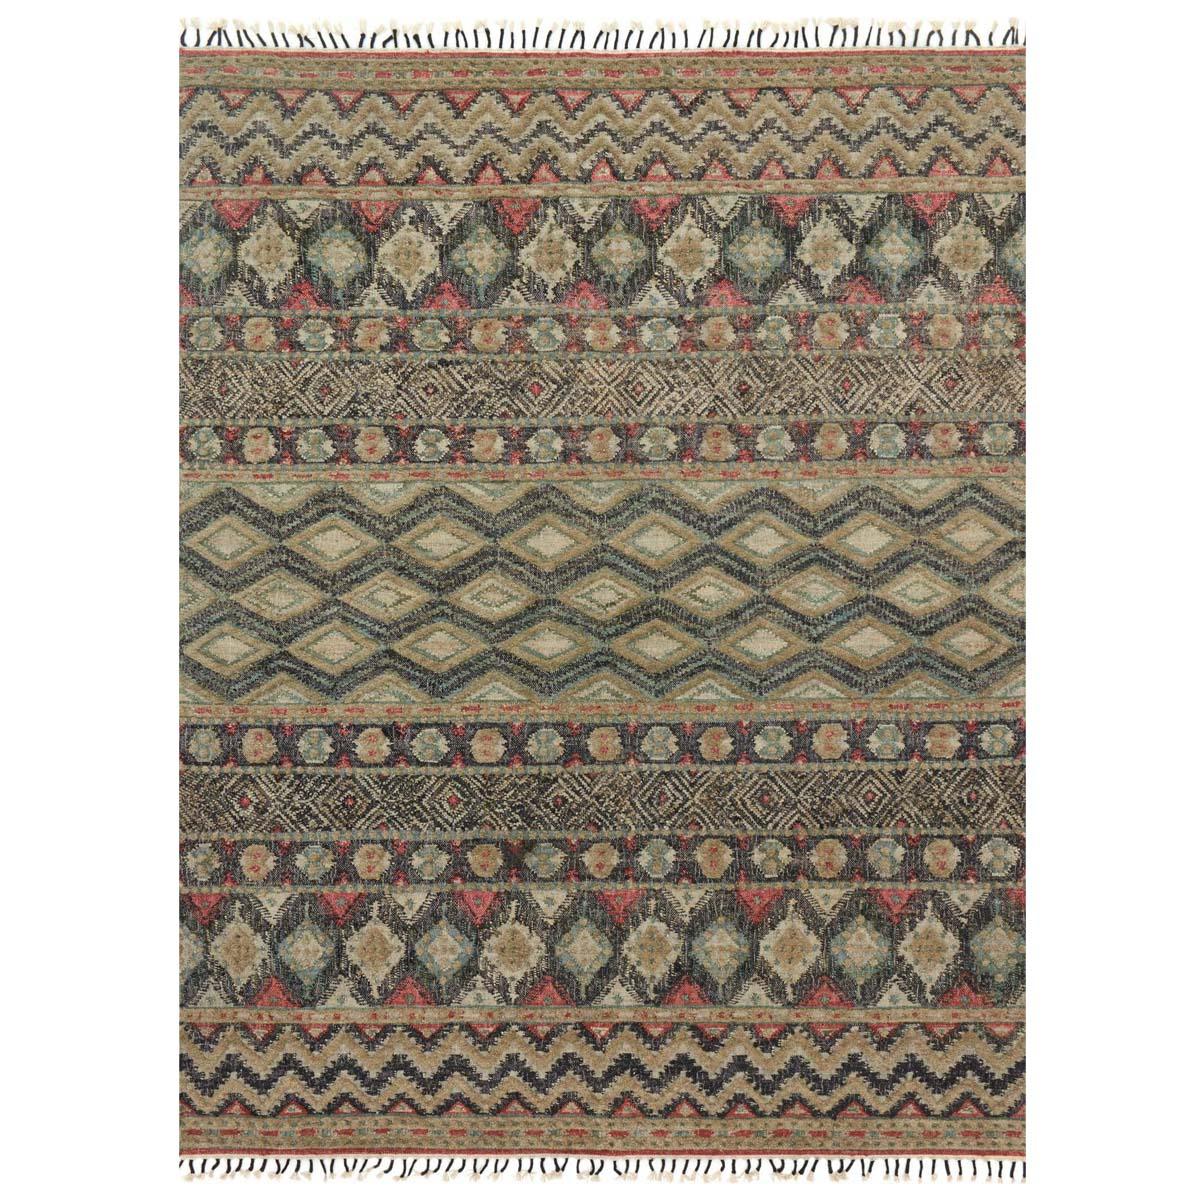 Zigzag Diamonds Rug - 9 x 13